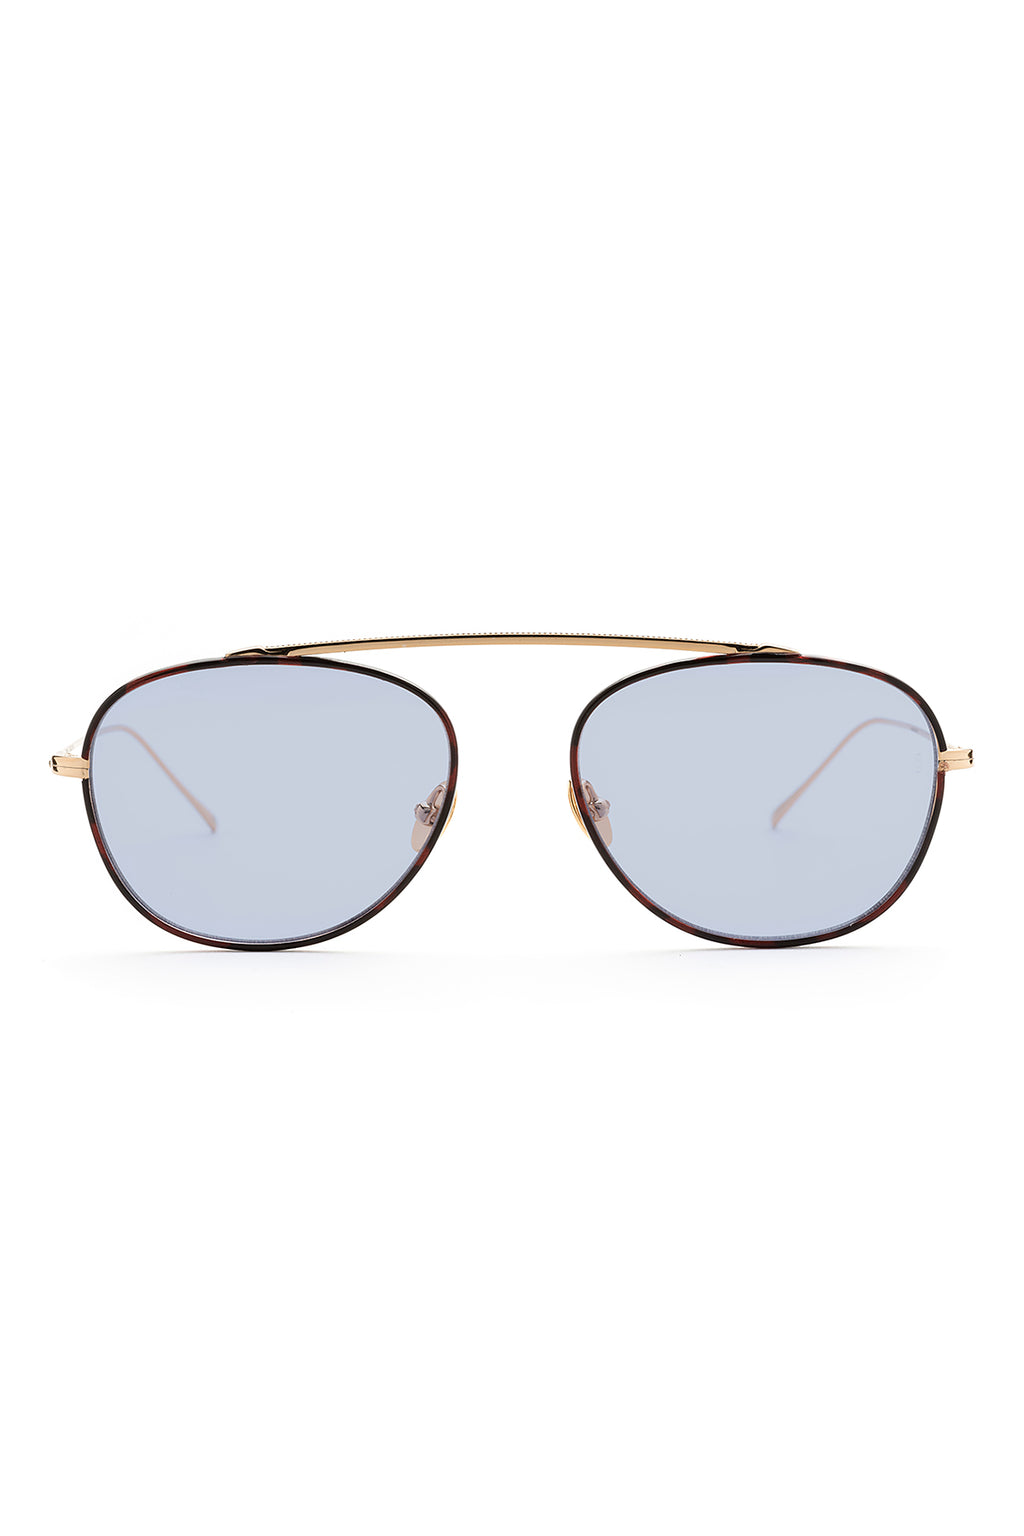 ROCKY Sunglasses, Gold